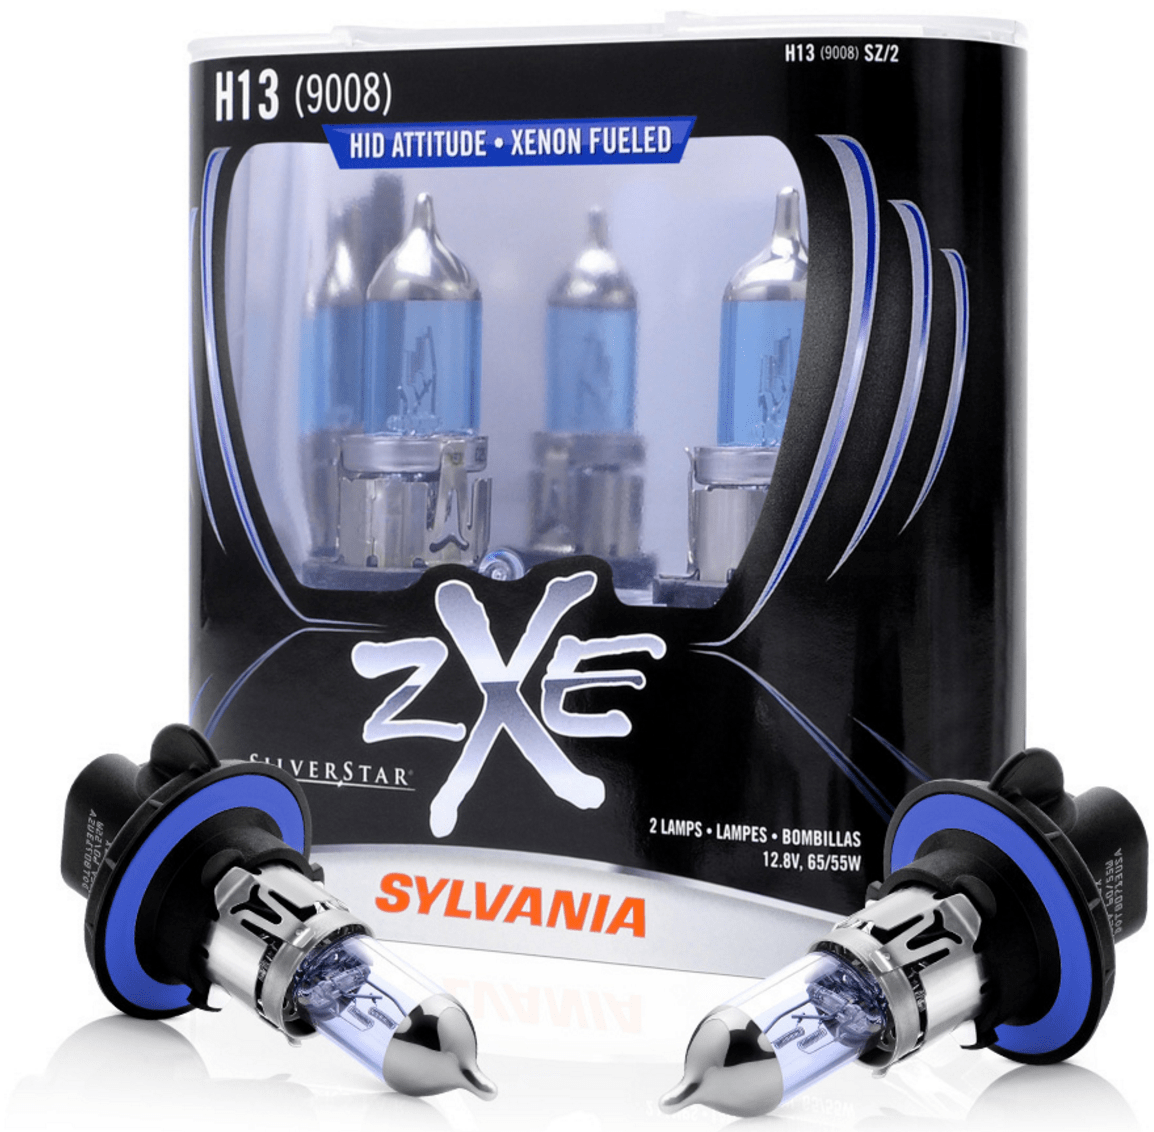 Sylvania SilverStar ZXe Headlight Review Awesome Design